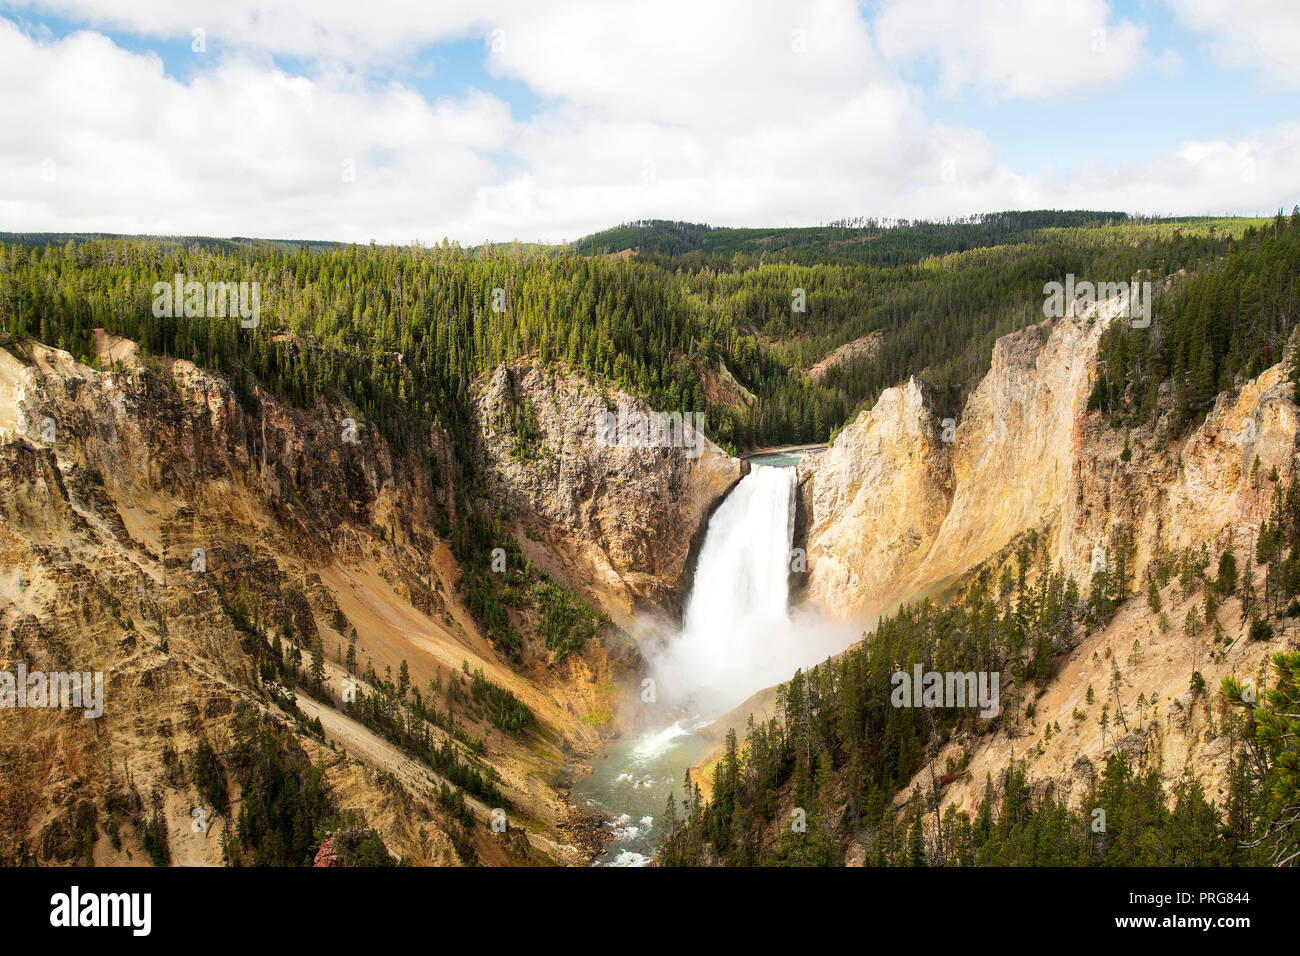 Lower Falls of the Grand Canyon of Yellowstone at Yellowstone National Park. - Stock Image